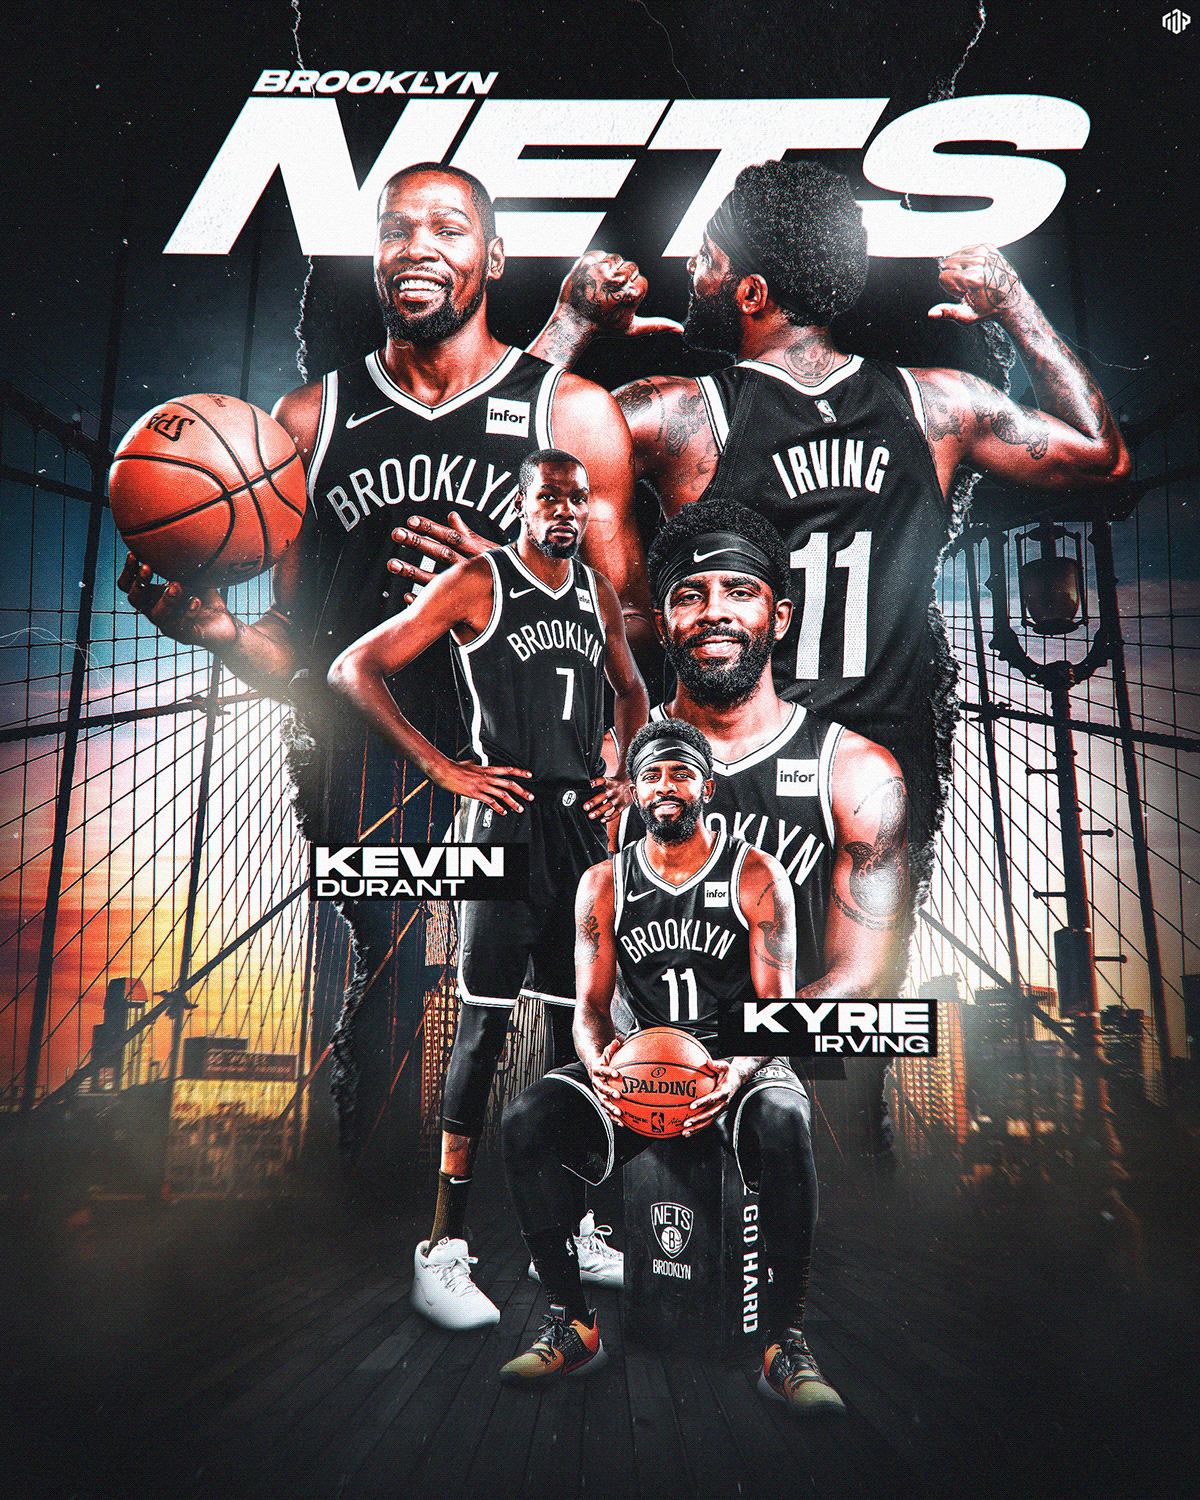 Brooklyn Media Day Graphic (Kyrie and KD) on Behance